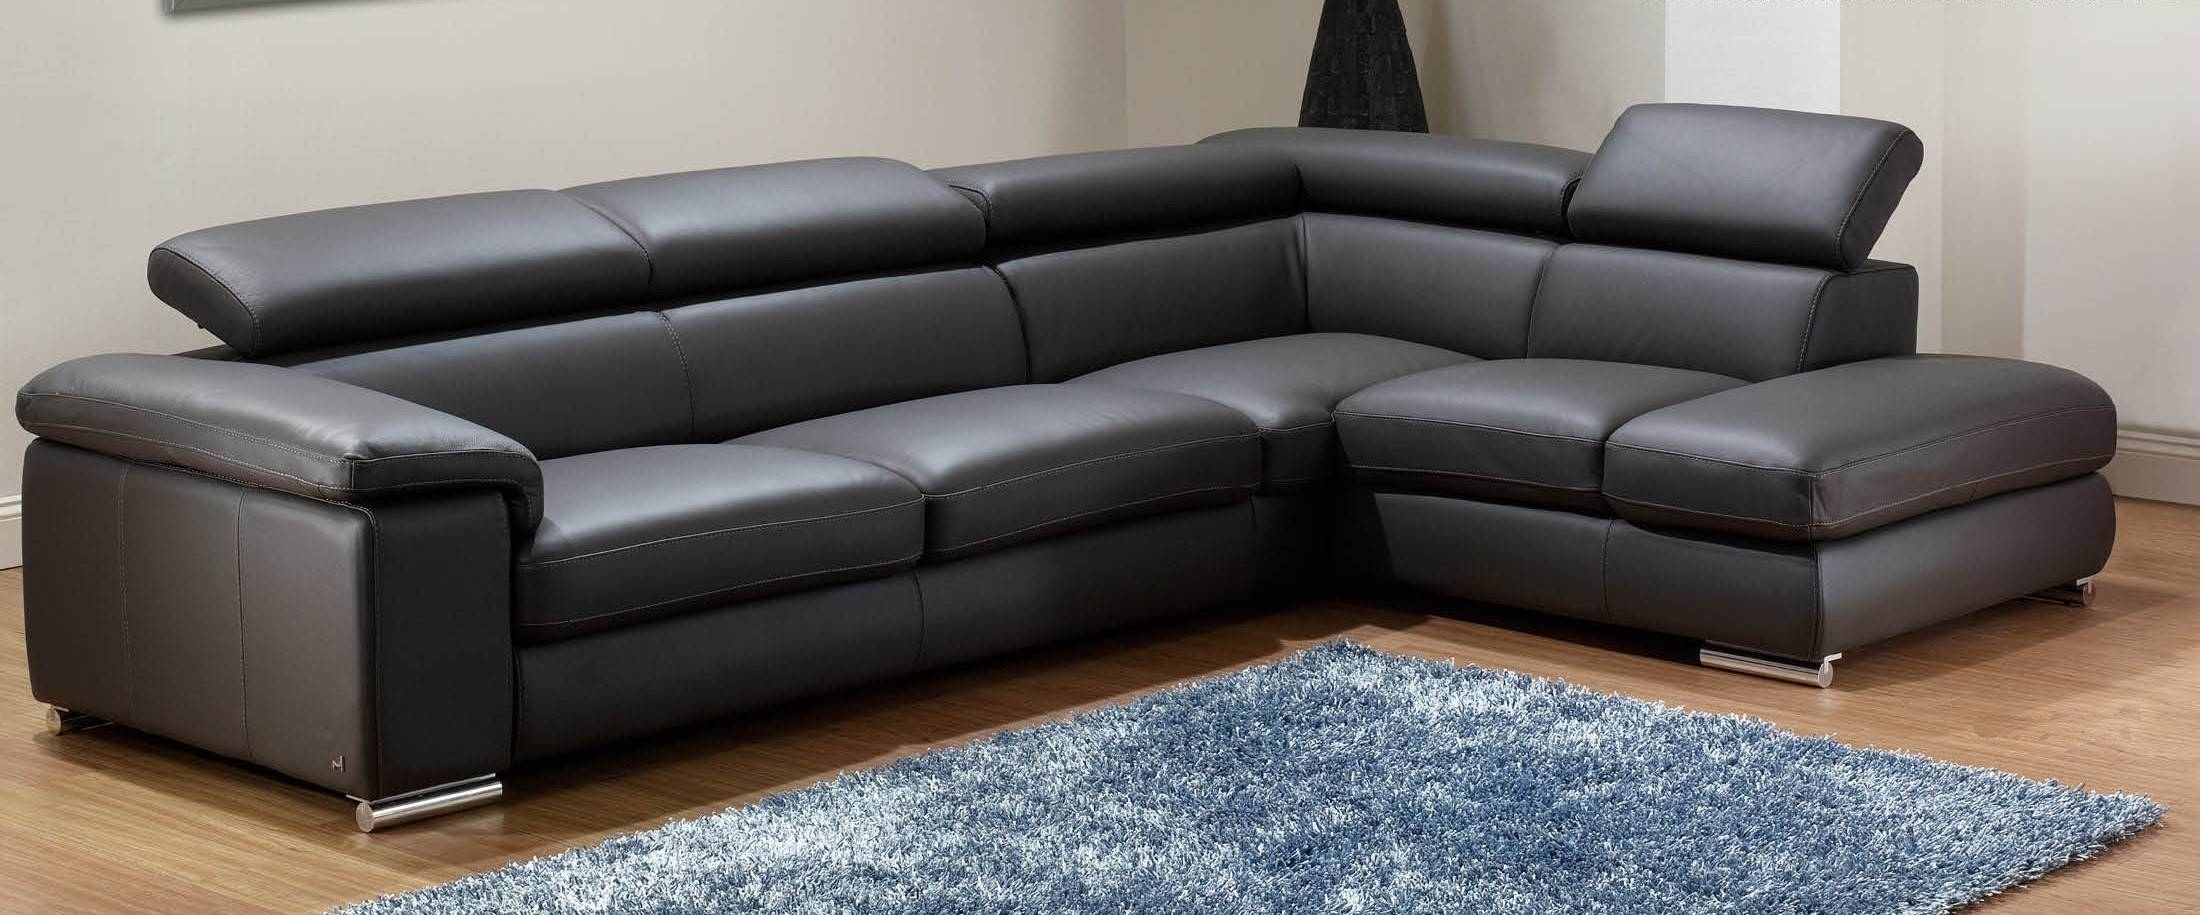 Sectional Sofa For Small Spaces 30 Best Ideas Of Sectional Sofas For Small Spaces With